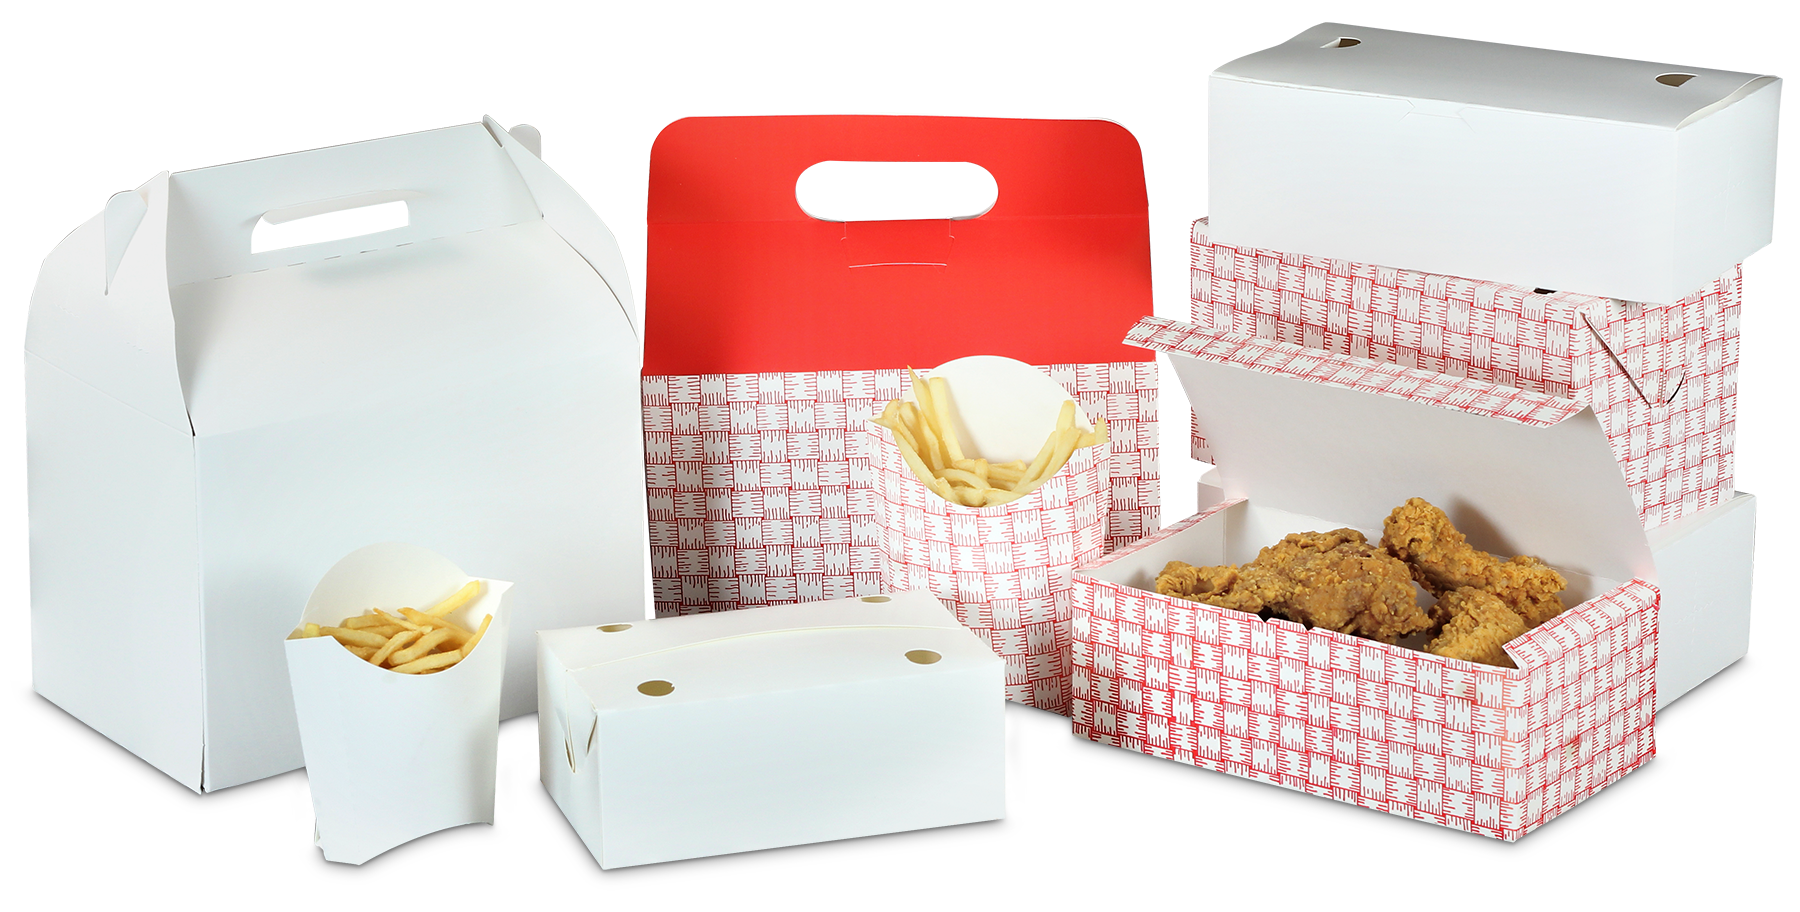 Fast Food & Deli Takeout Containers